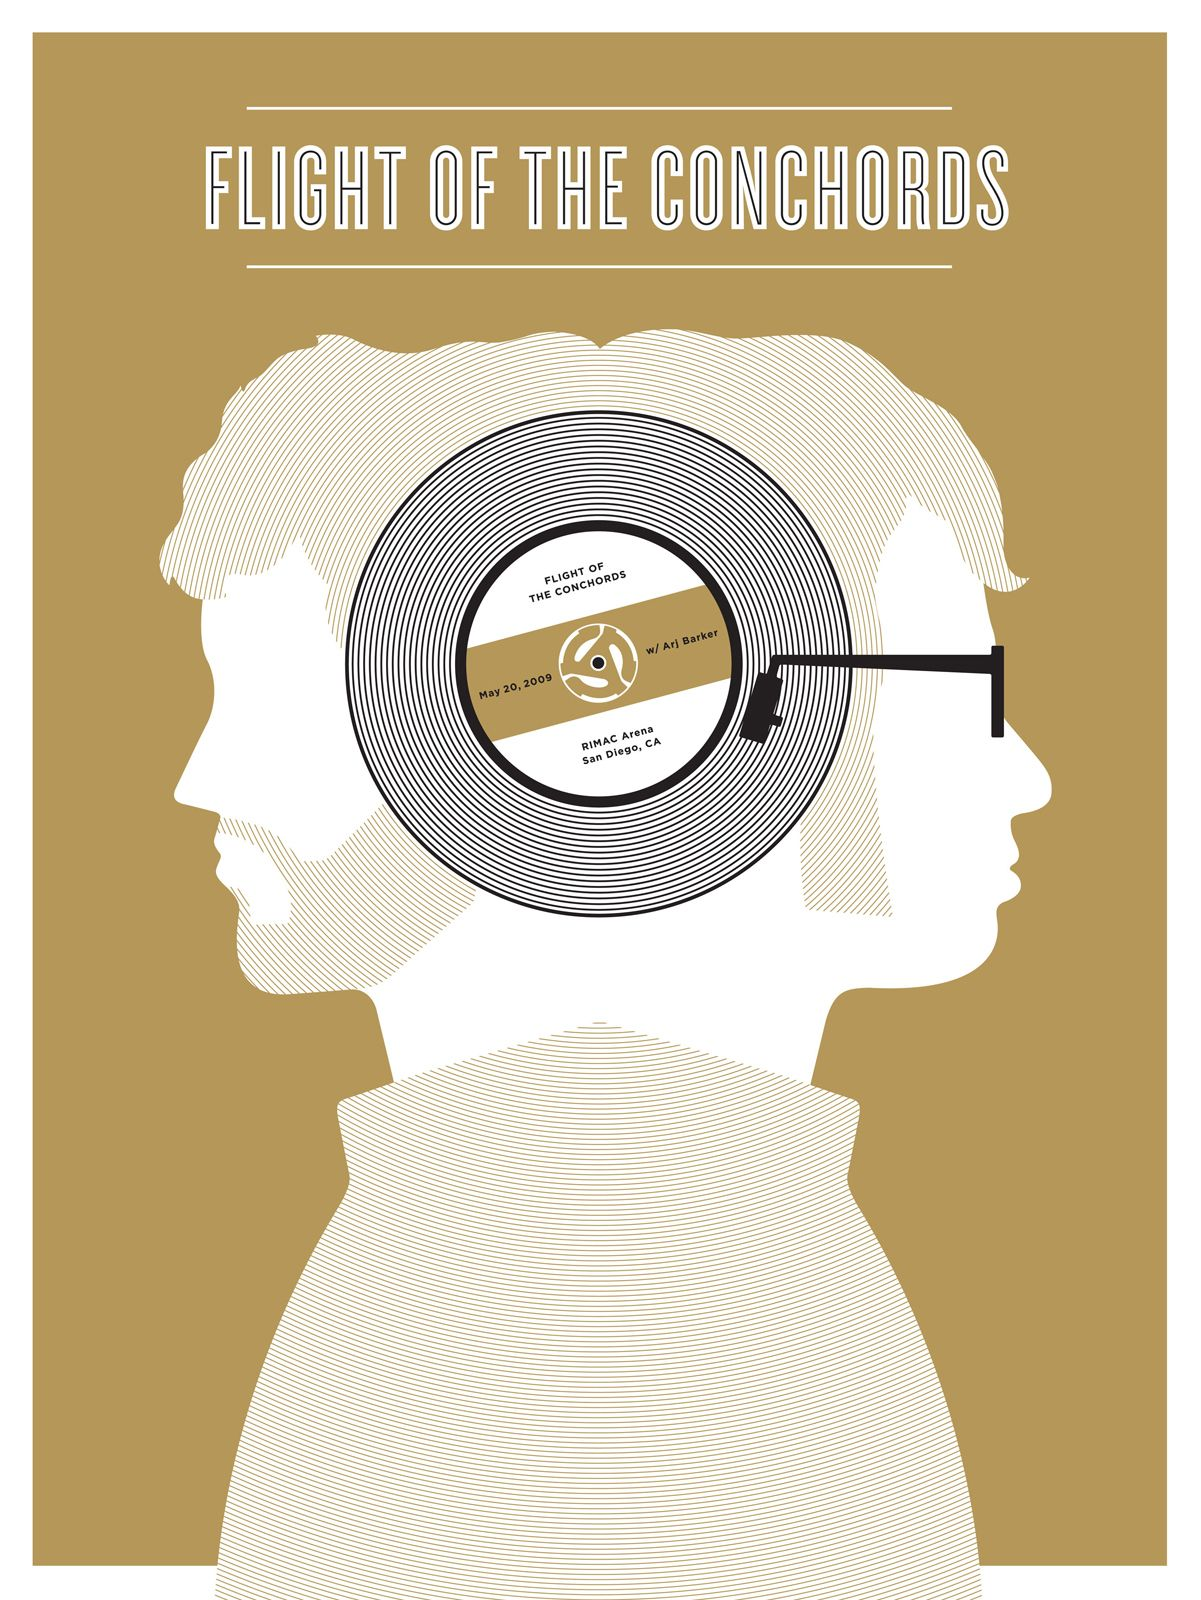 The Small Stakes Music Posters Music Poster Flight Of The Conchords Chronicle Books